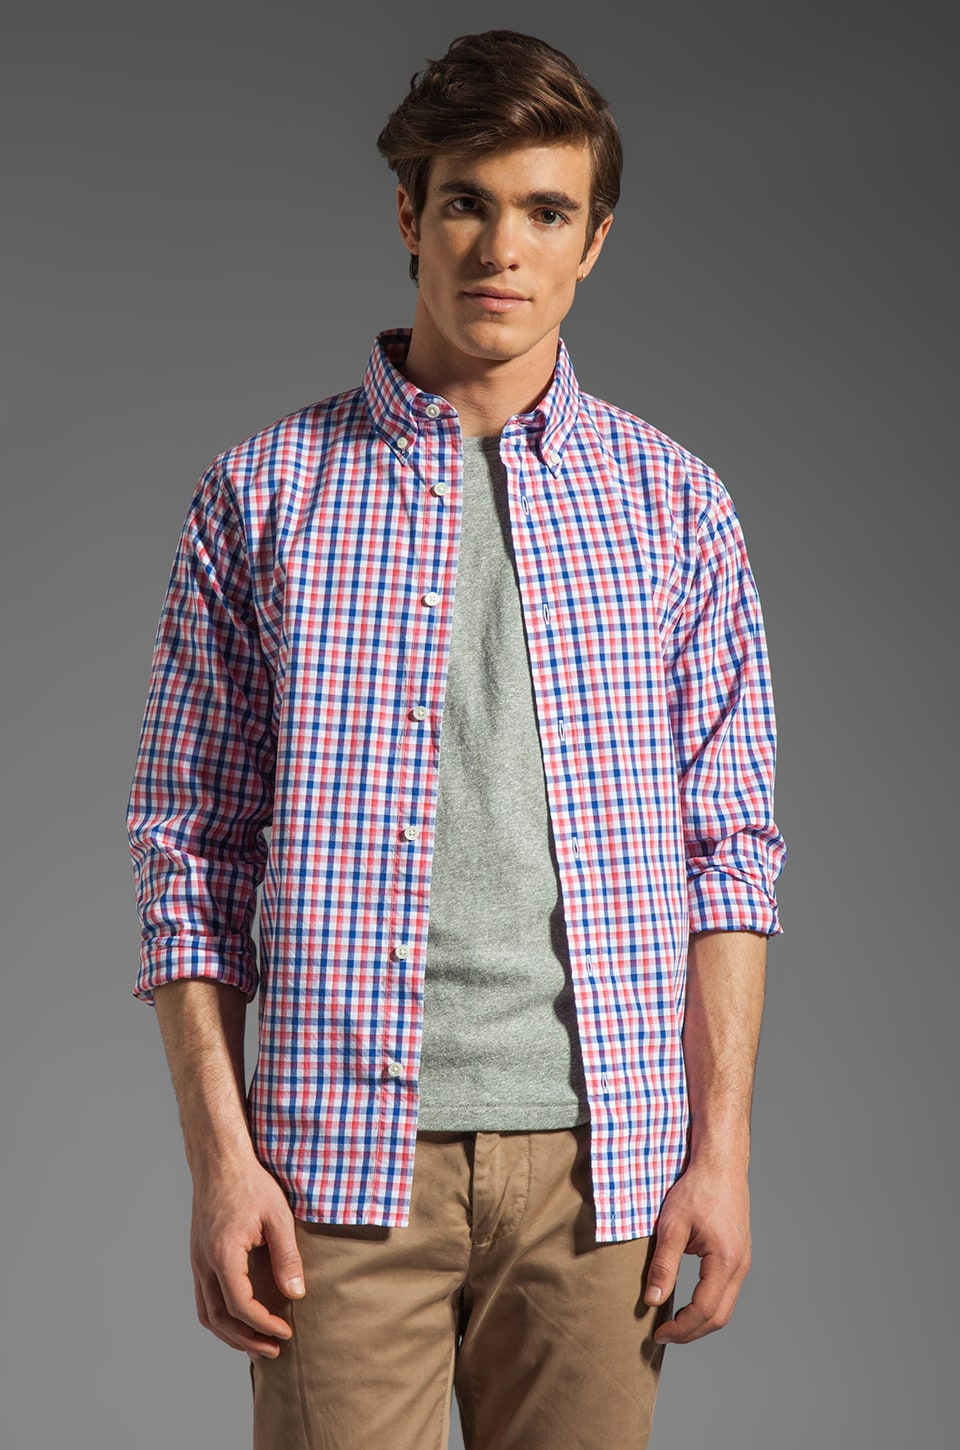 Jack Spade Bailey Gingham Shirt in Navy/Red